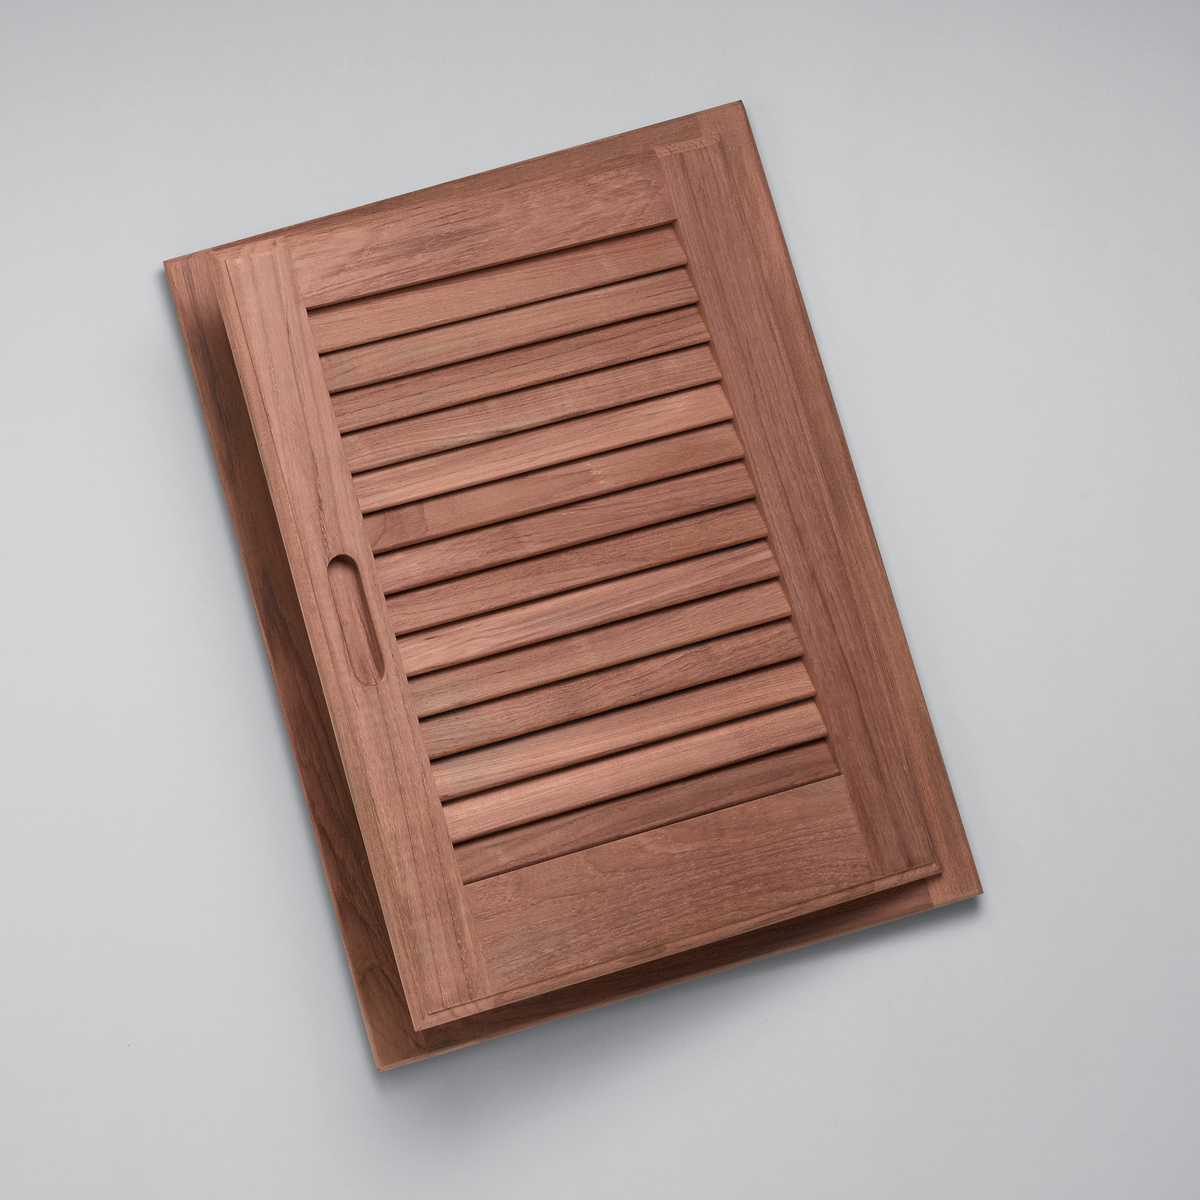 12 x 15 teak louvered door left hand bosun supplies bosun supplies 15 x 20 teak louvered door and frame lh jeuxipadfo Images